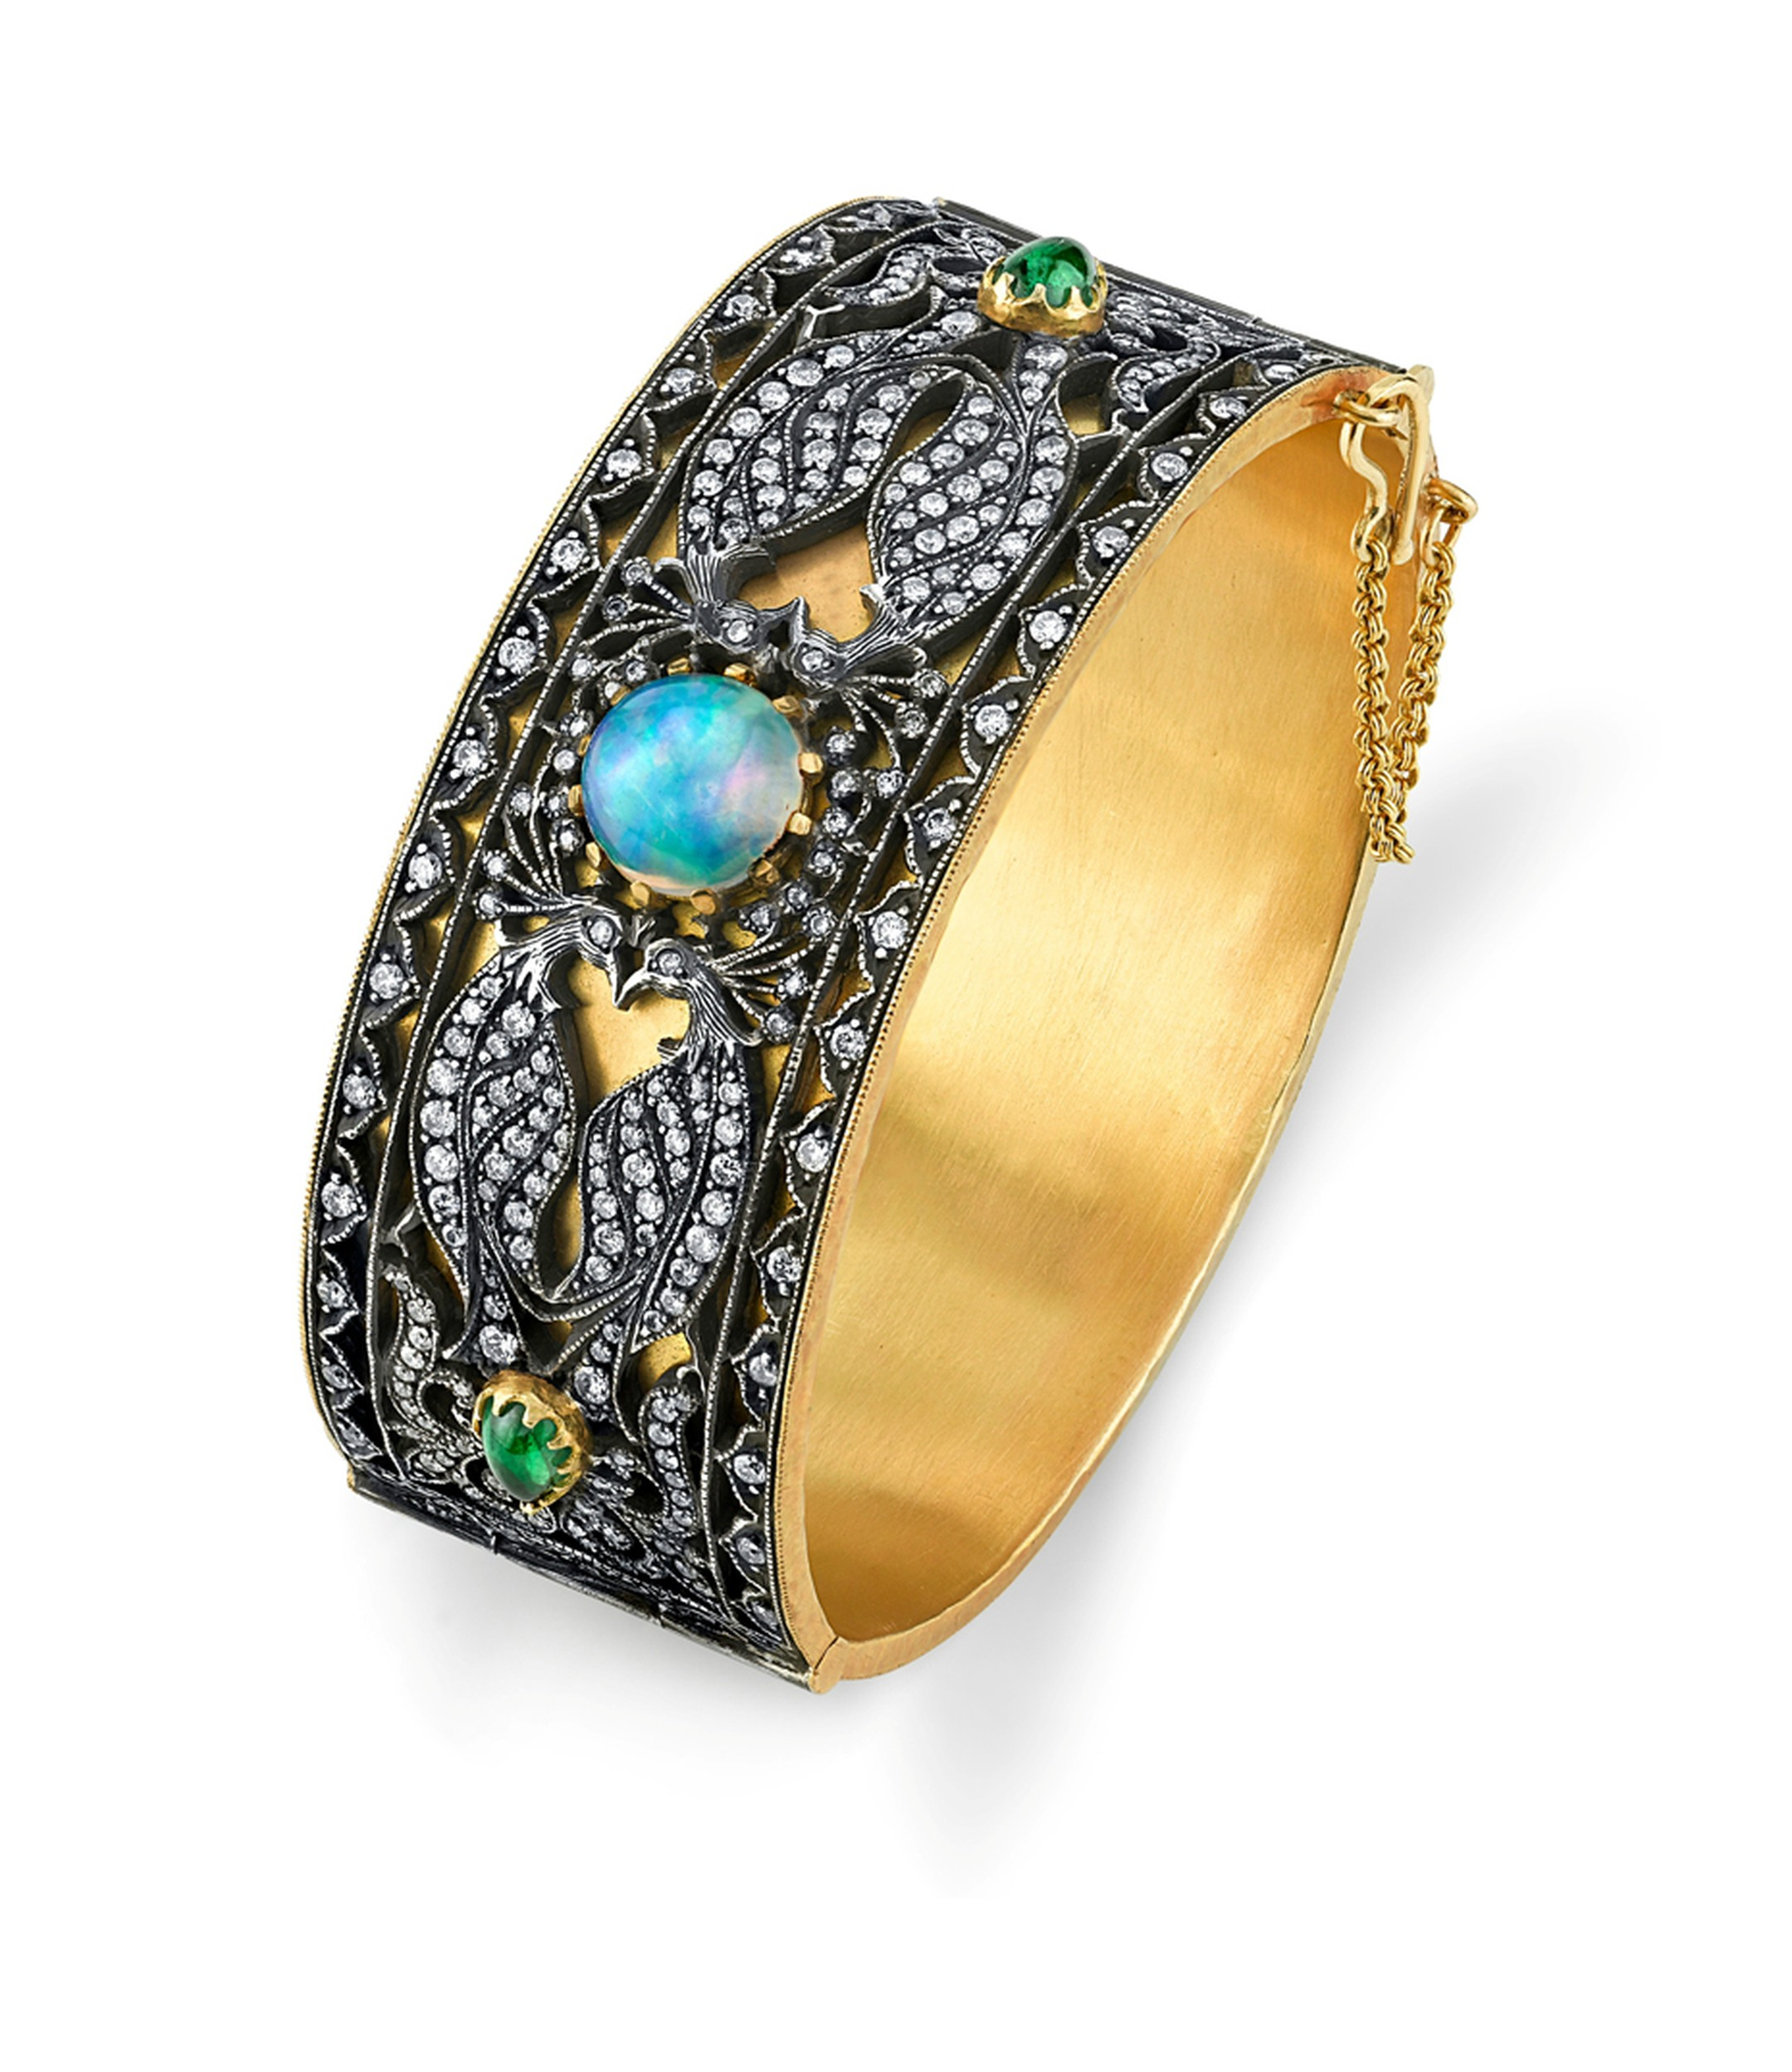 Arman Sarkisyan gold Peacock cuff with opal and oxidised silver